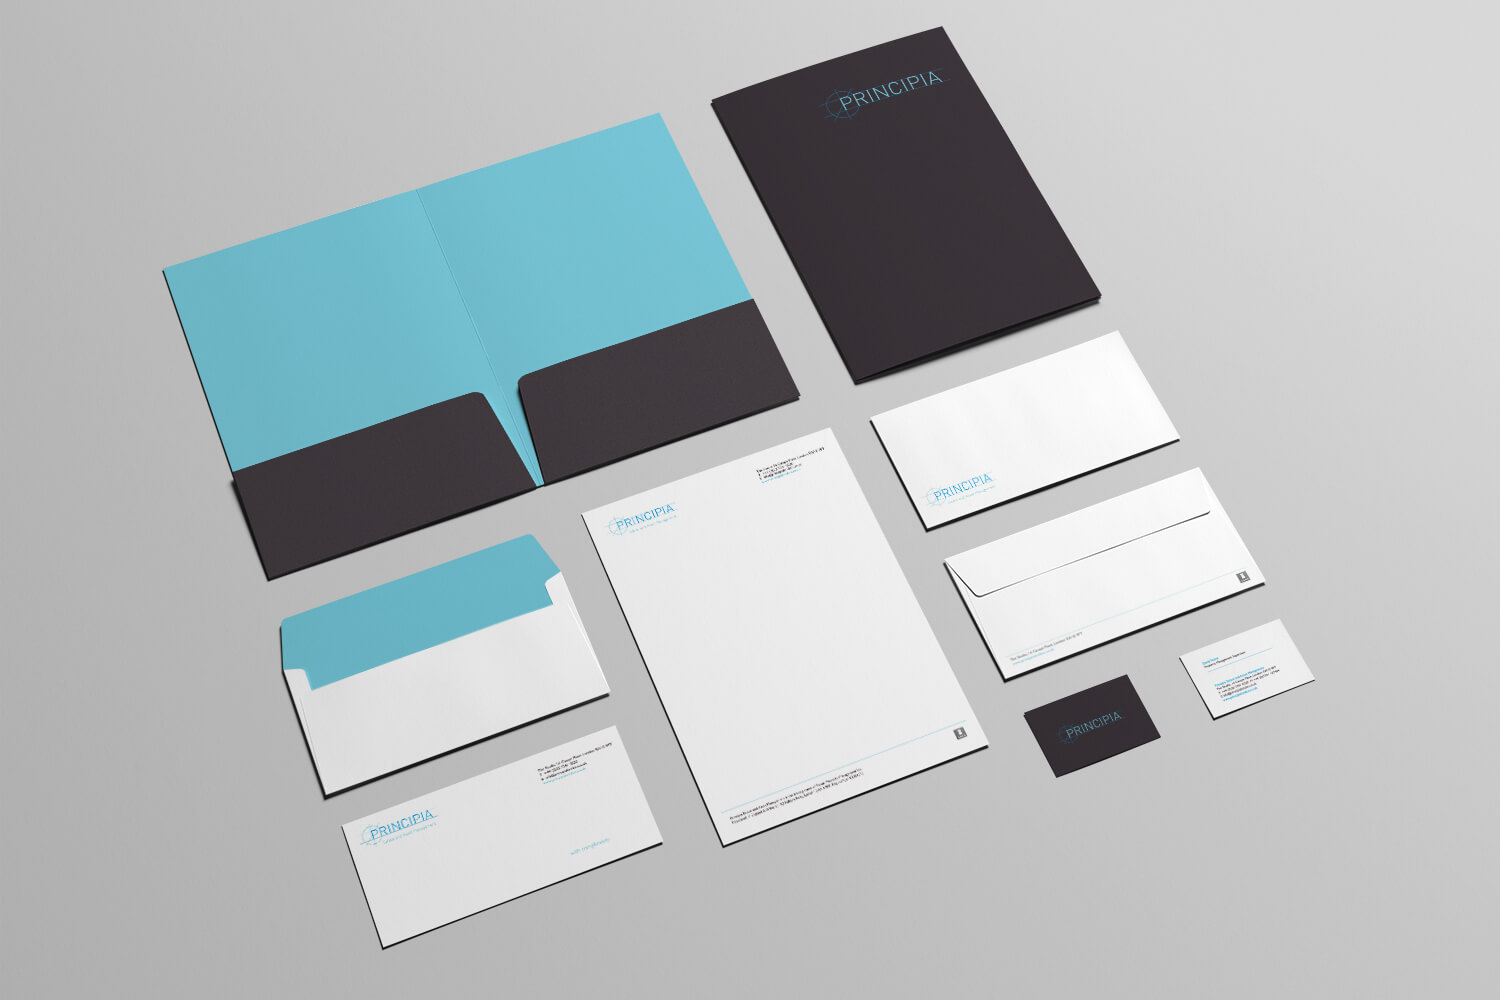 A photo of stationery that forms part of the new Principia brand identity design